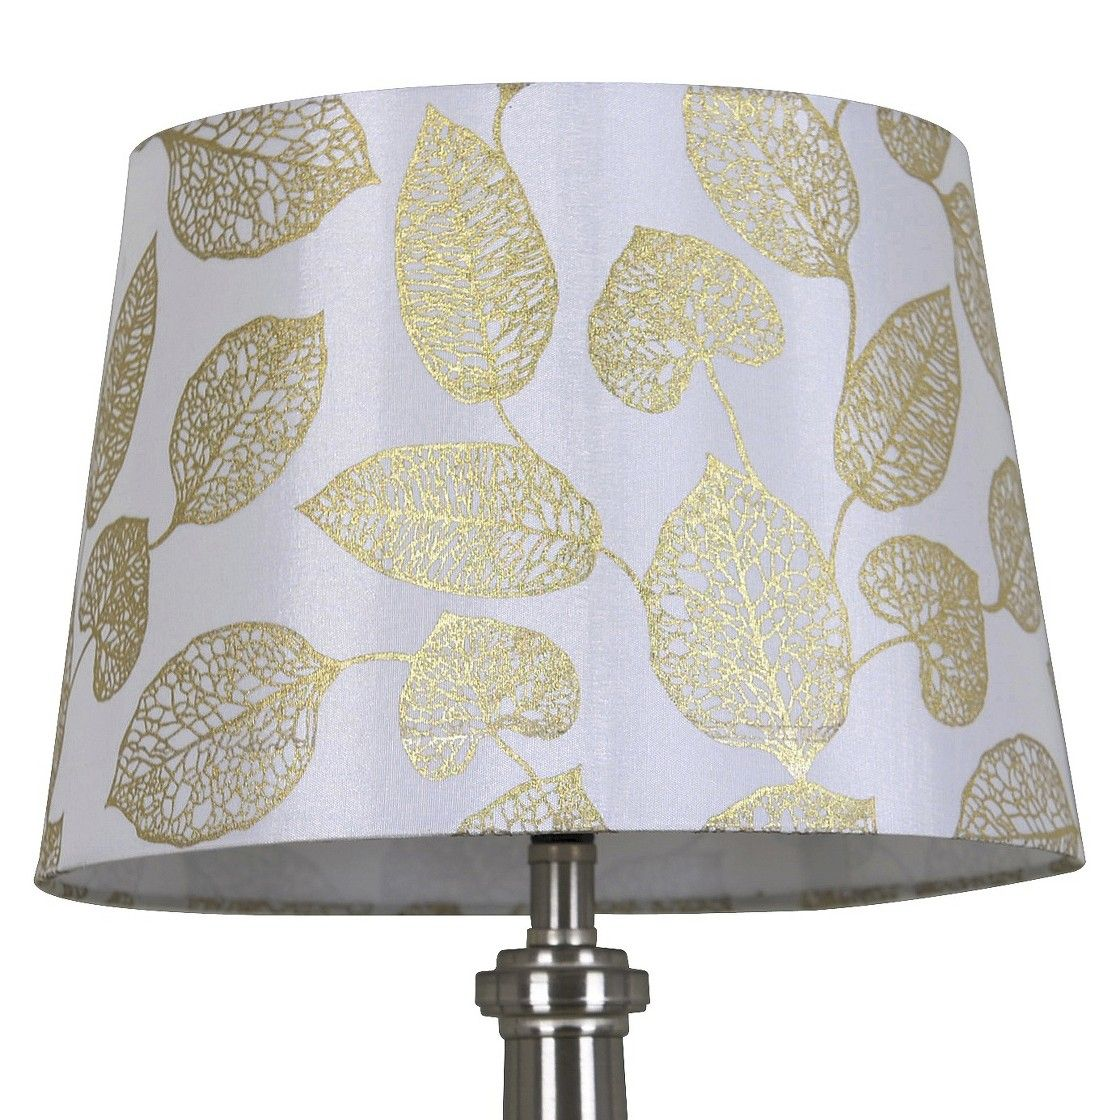 Threshold metallic foil leaf lamp shade ideas for my new place threshold metallic foil leaf lamp shade aloadofball Images